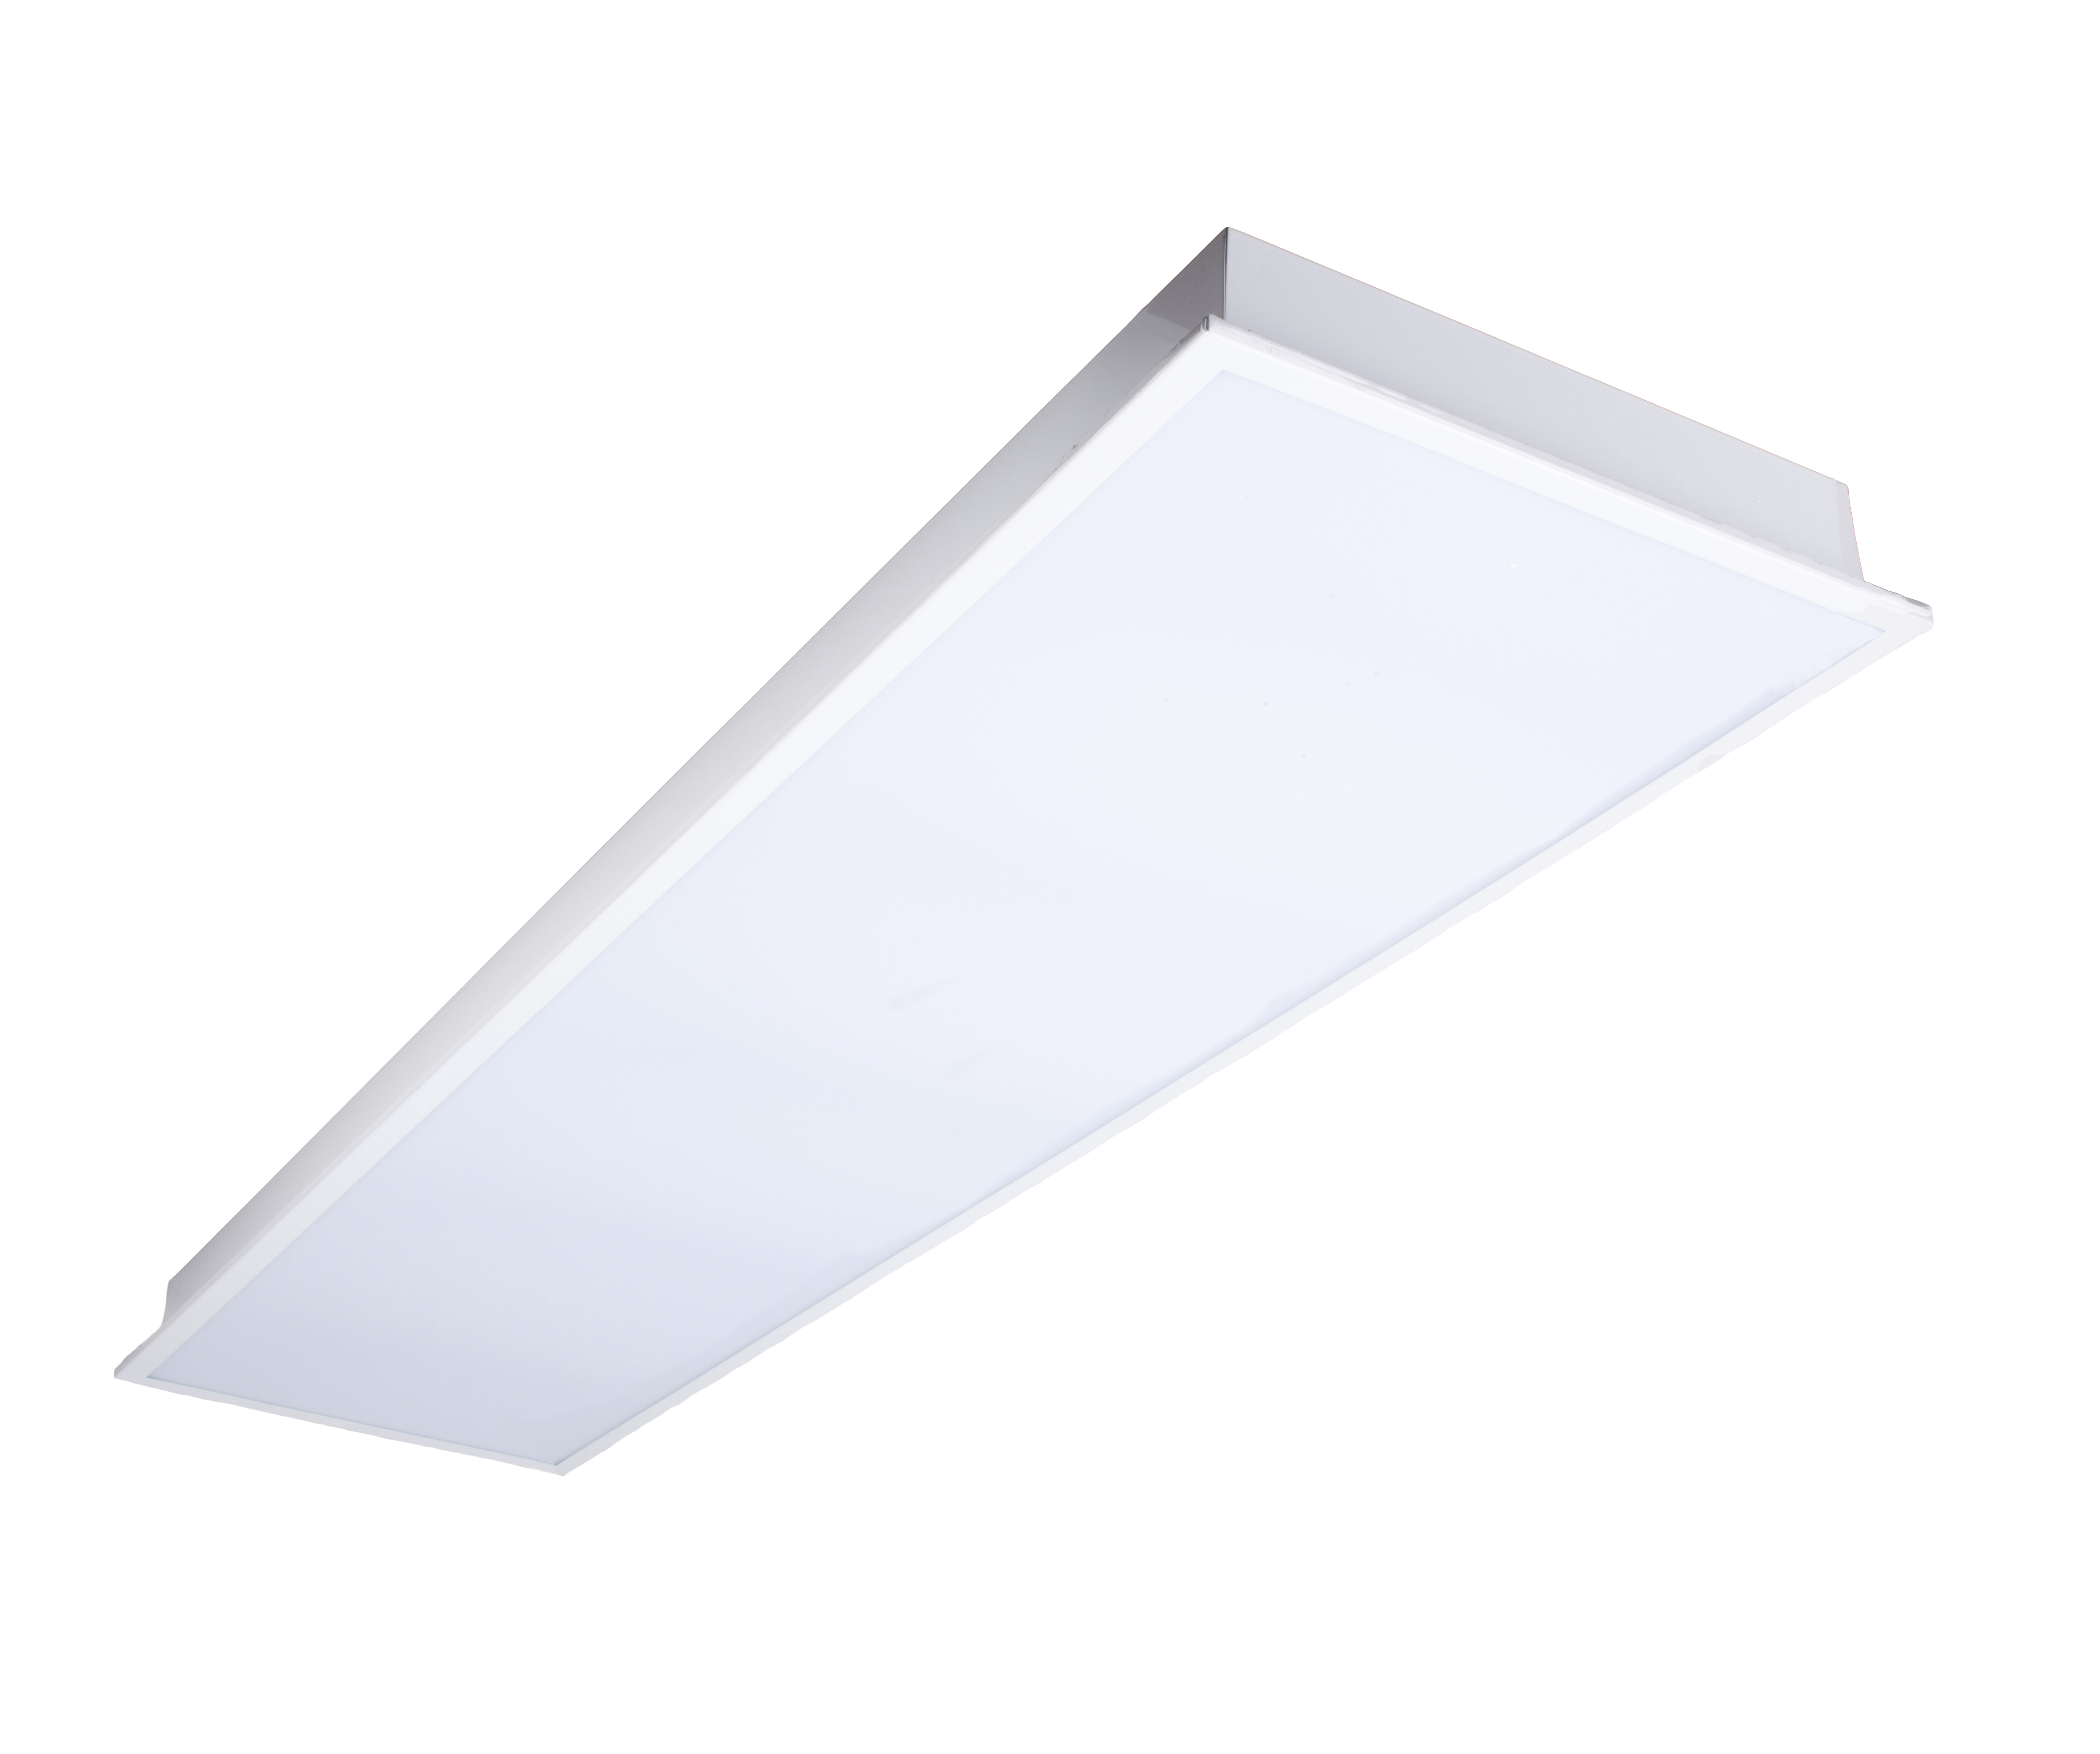 Delightful 14PNL35/835/LED 80917 LED FLAT PANEL 1x4 35W 3500K DIMMABLE ProLED